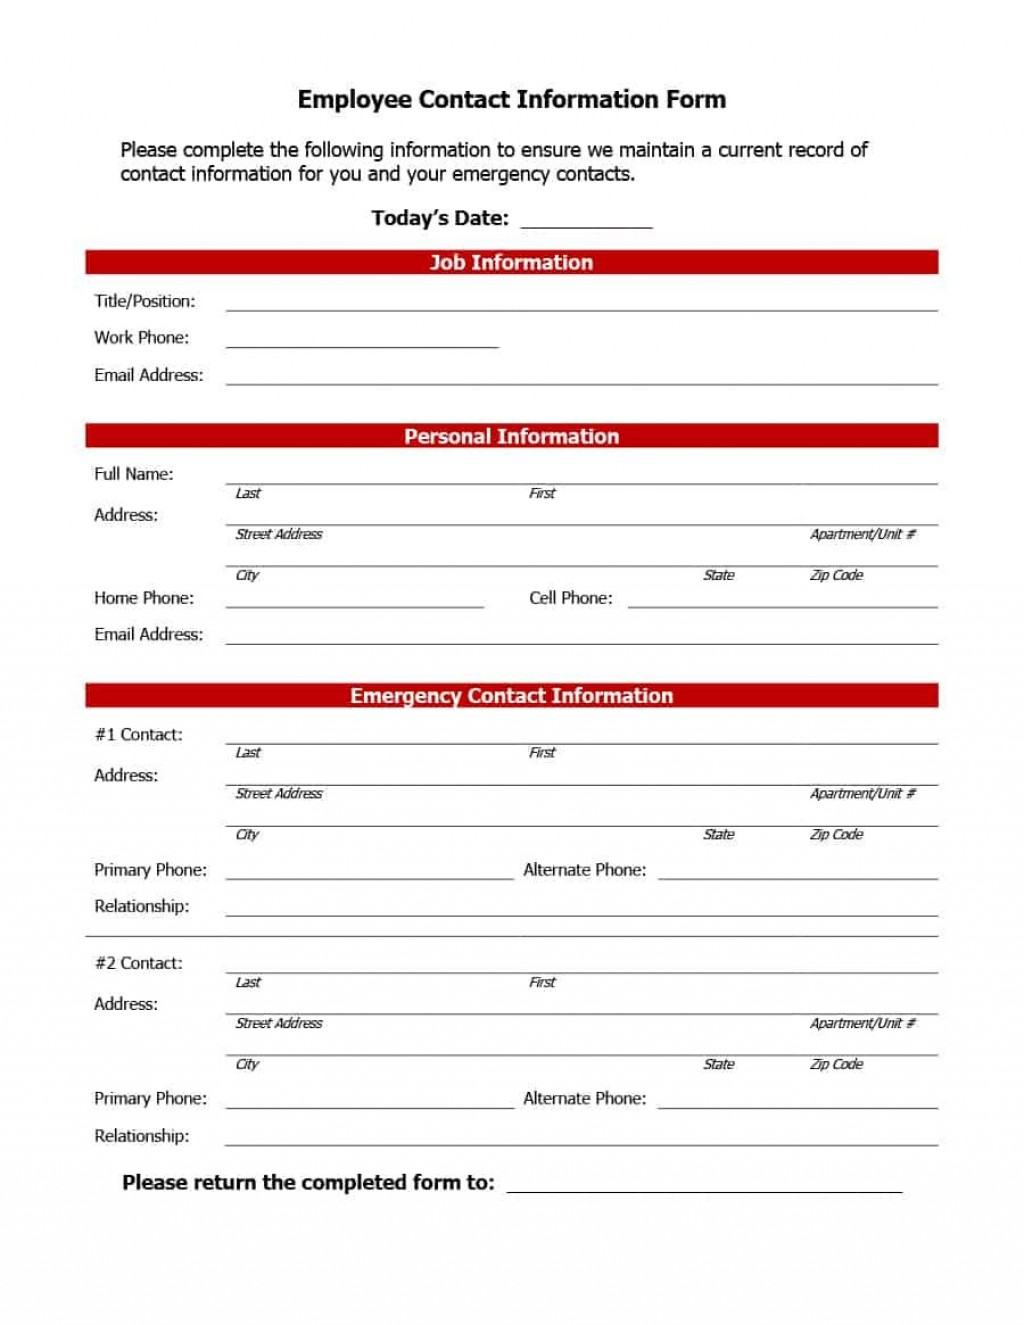 007 Outstanding Travel Emergency Contact Card Template High Resolution Large